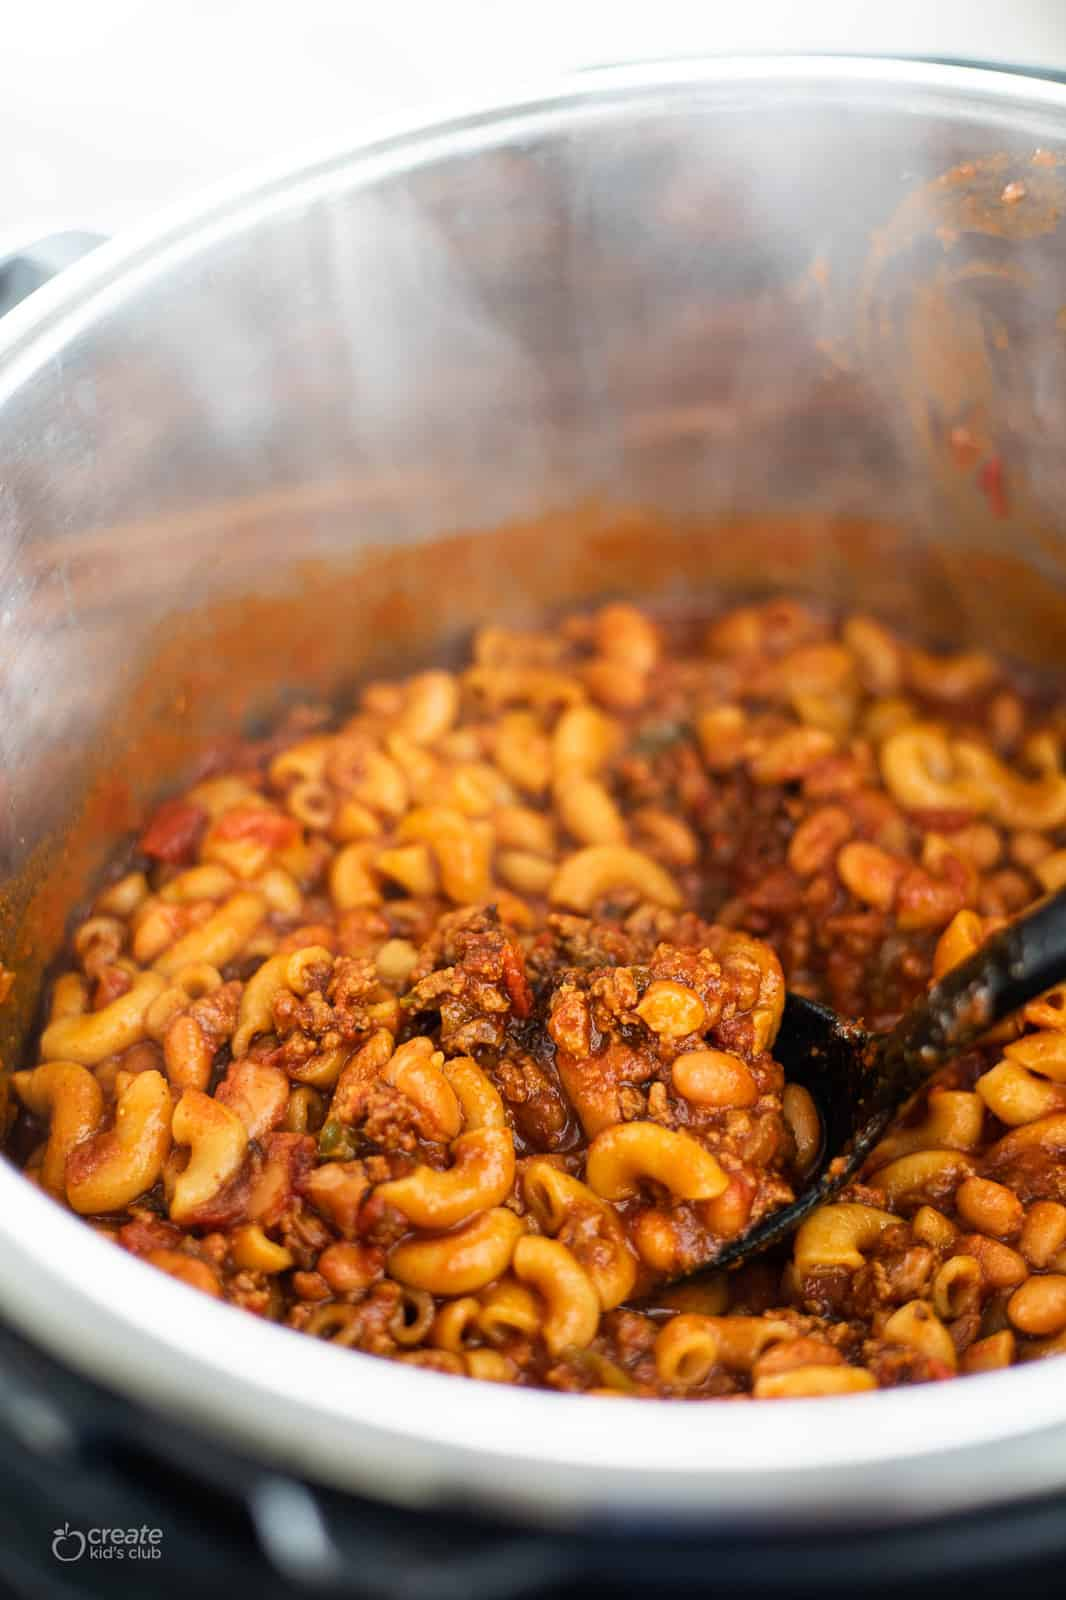 chili mac being scooped from the instant pot